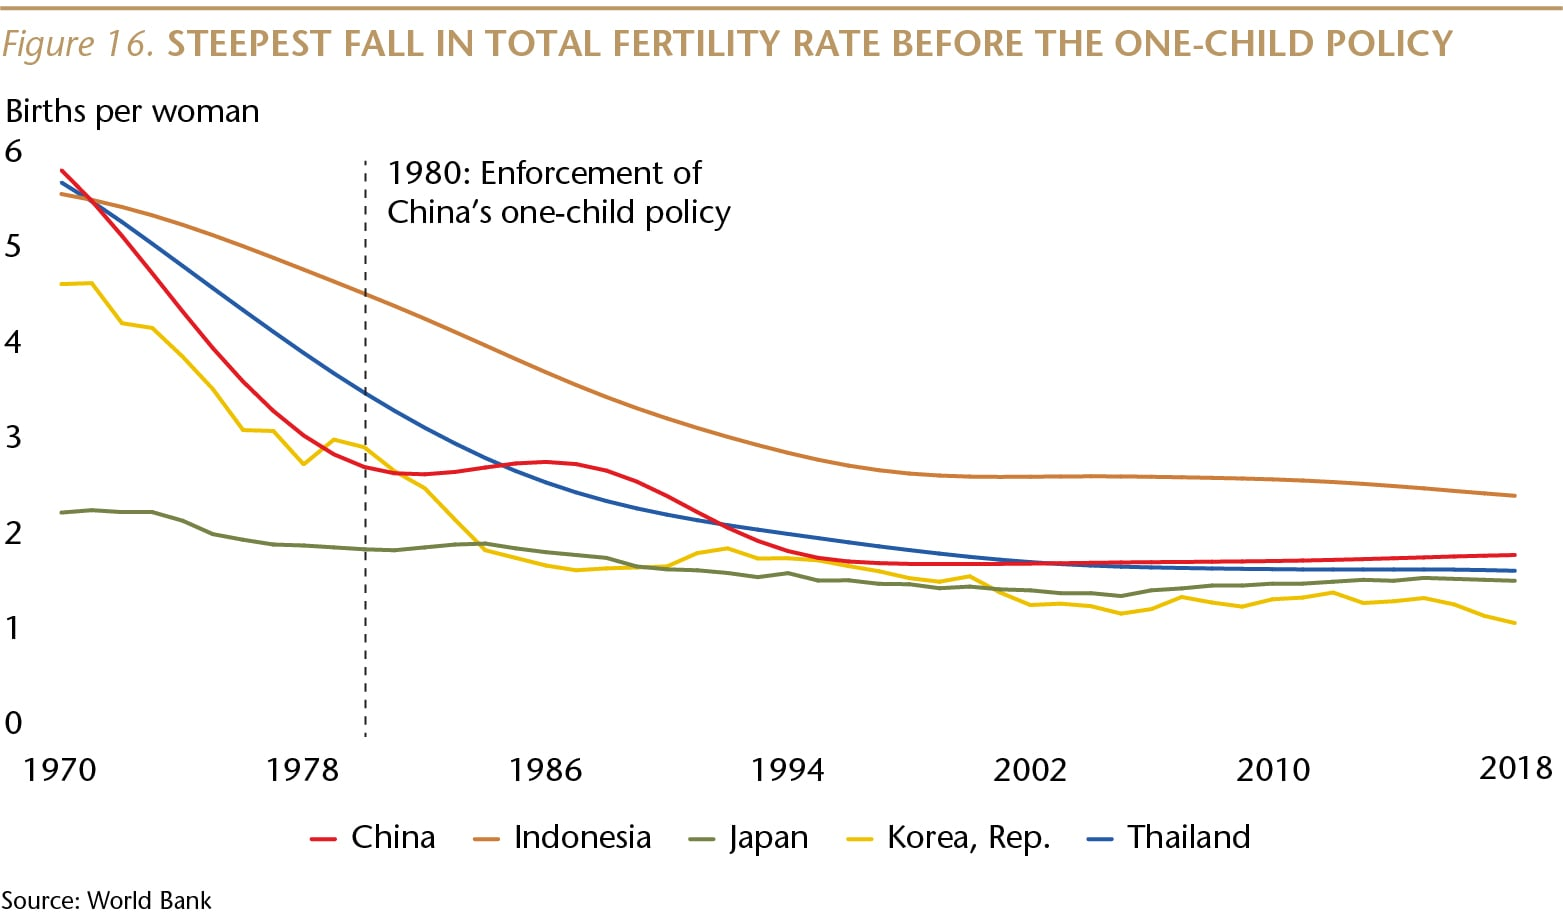 SI073_Figure 16_Steepest fall in fertility rate_WEB-01-min.jpg